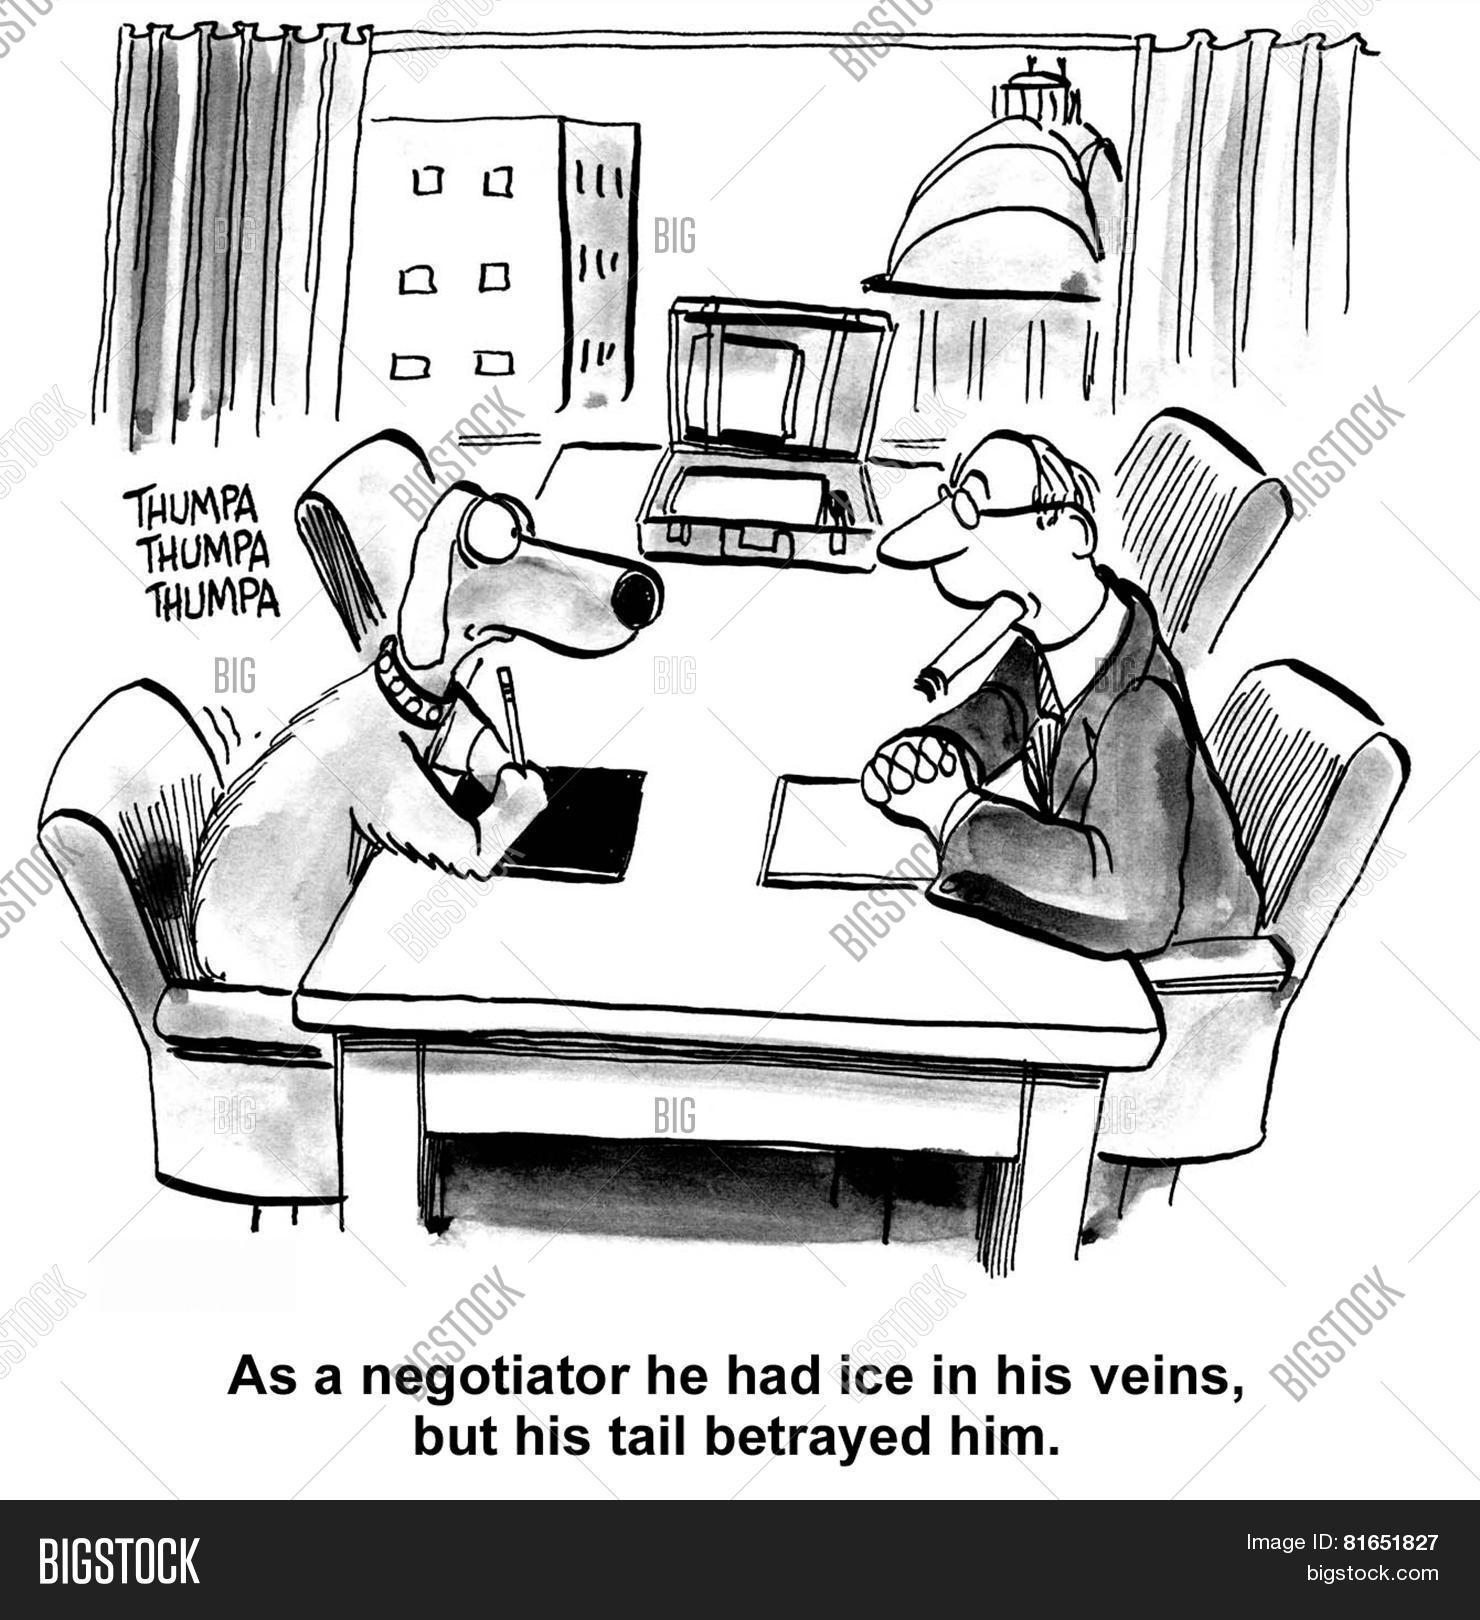 acquisition,agreement,attorney,business,business deal,business law,businessman,cartoon dog,cartoon man,cartoons,comics,compromise,contract,deal,dog,excited,funny,funny dog,gag,humor,humorous,ice,law,lawsuit,lawyer,legal,man,negotiate,negotiation,negotiator,nerves,nervous,purchase,steel,stressed,stressed man,tail,thumping,veins